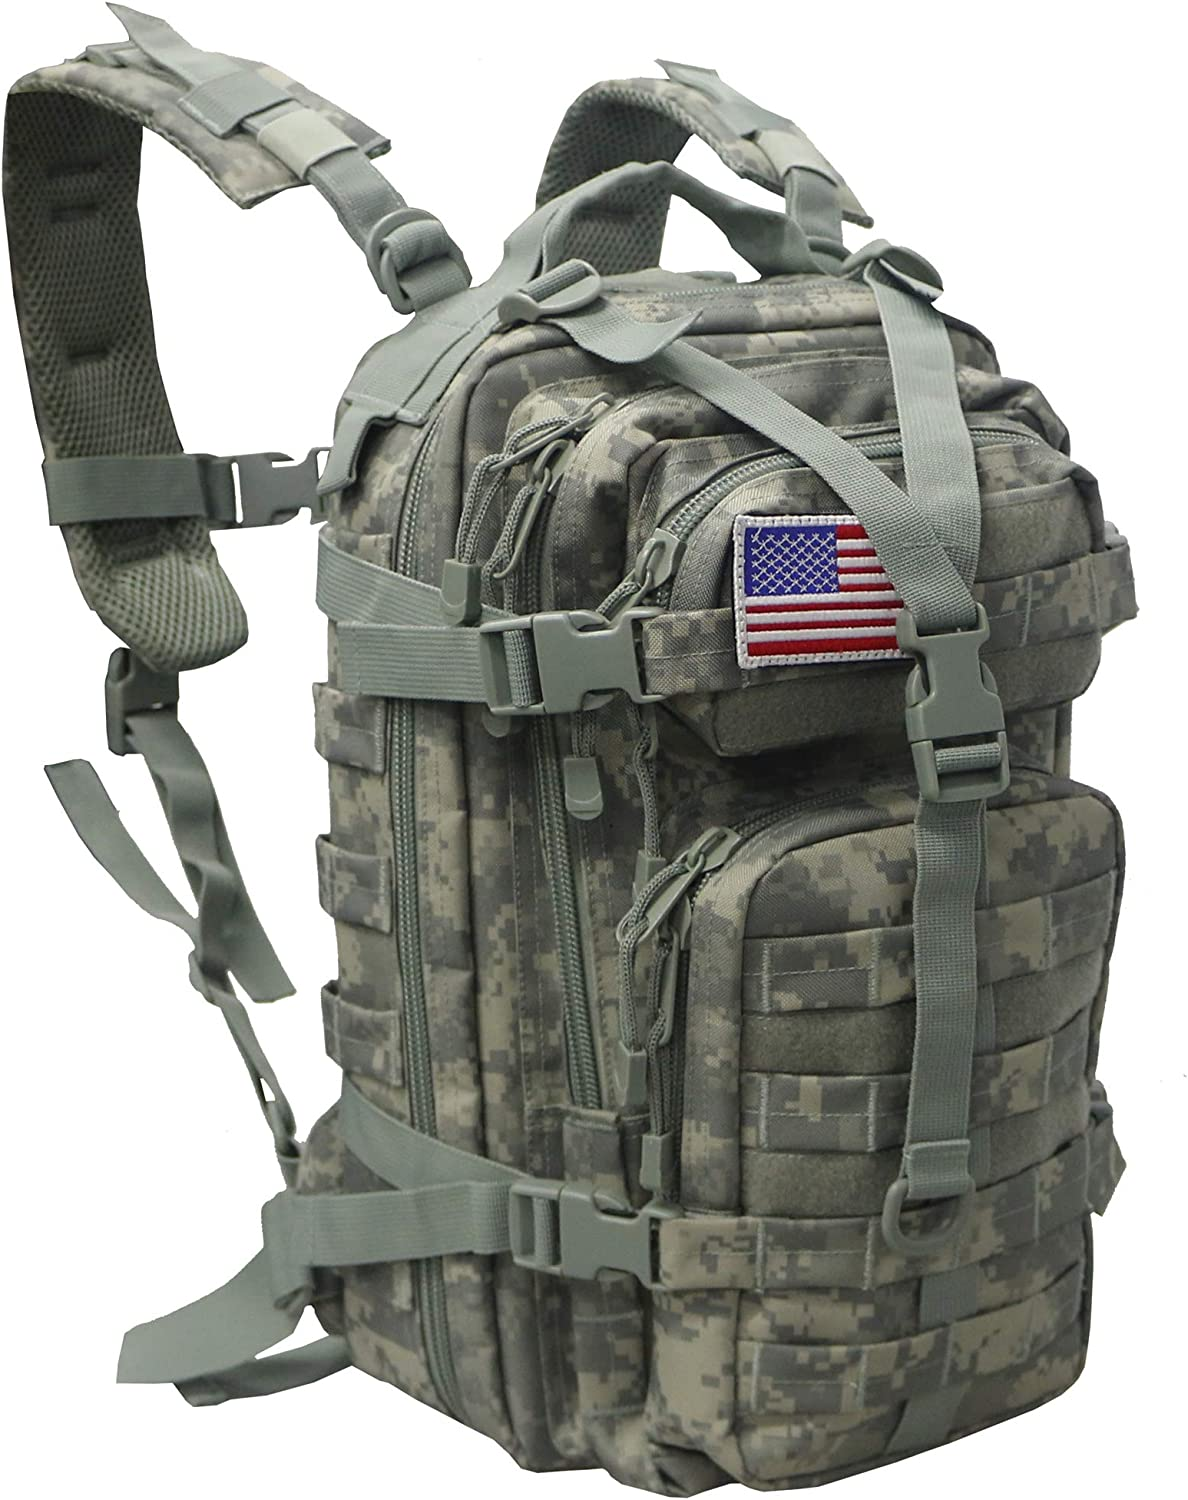 Small 30L Rucksack Military Tactical Industry No. 1 Flag Outdoor Backpack Omaha Mall Patch